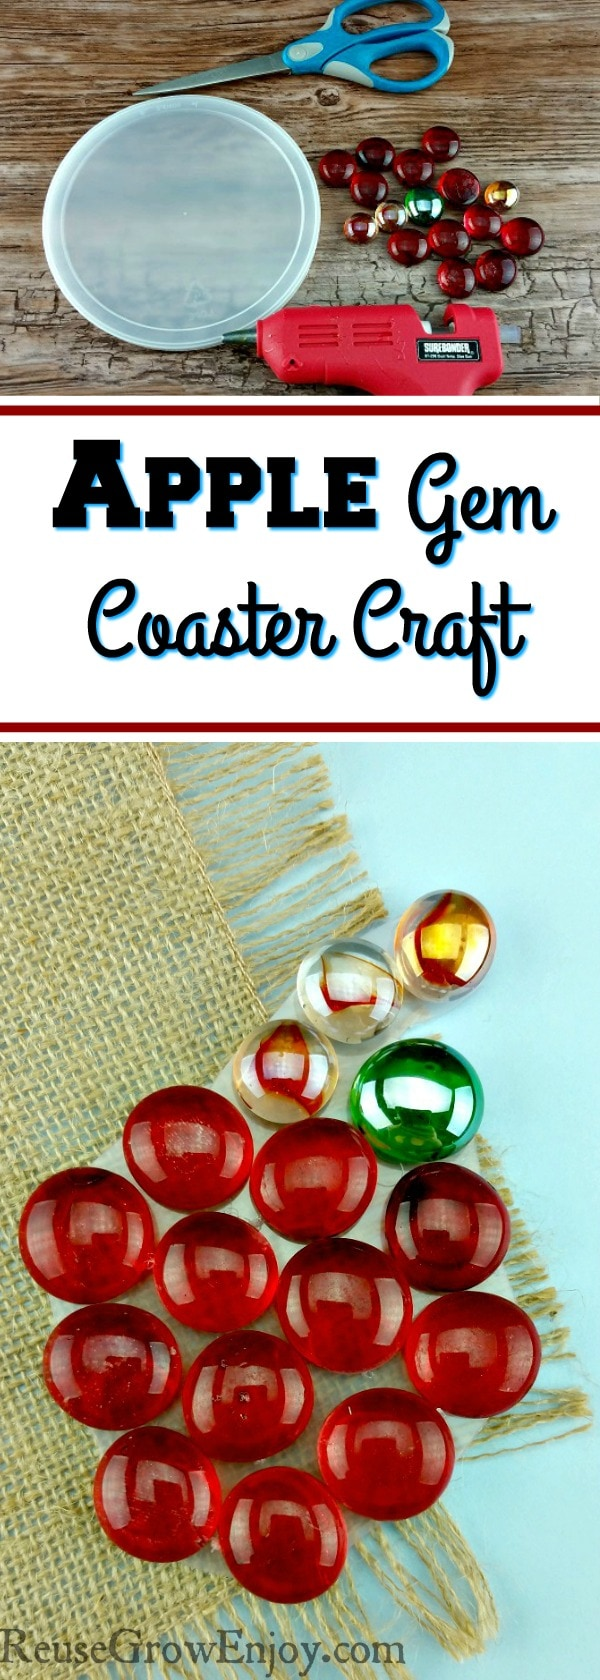 Looking for an easy apple craft you can do with the kids? Check out this easy Apple Gem Coaster Craft!